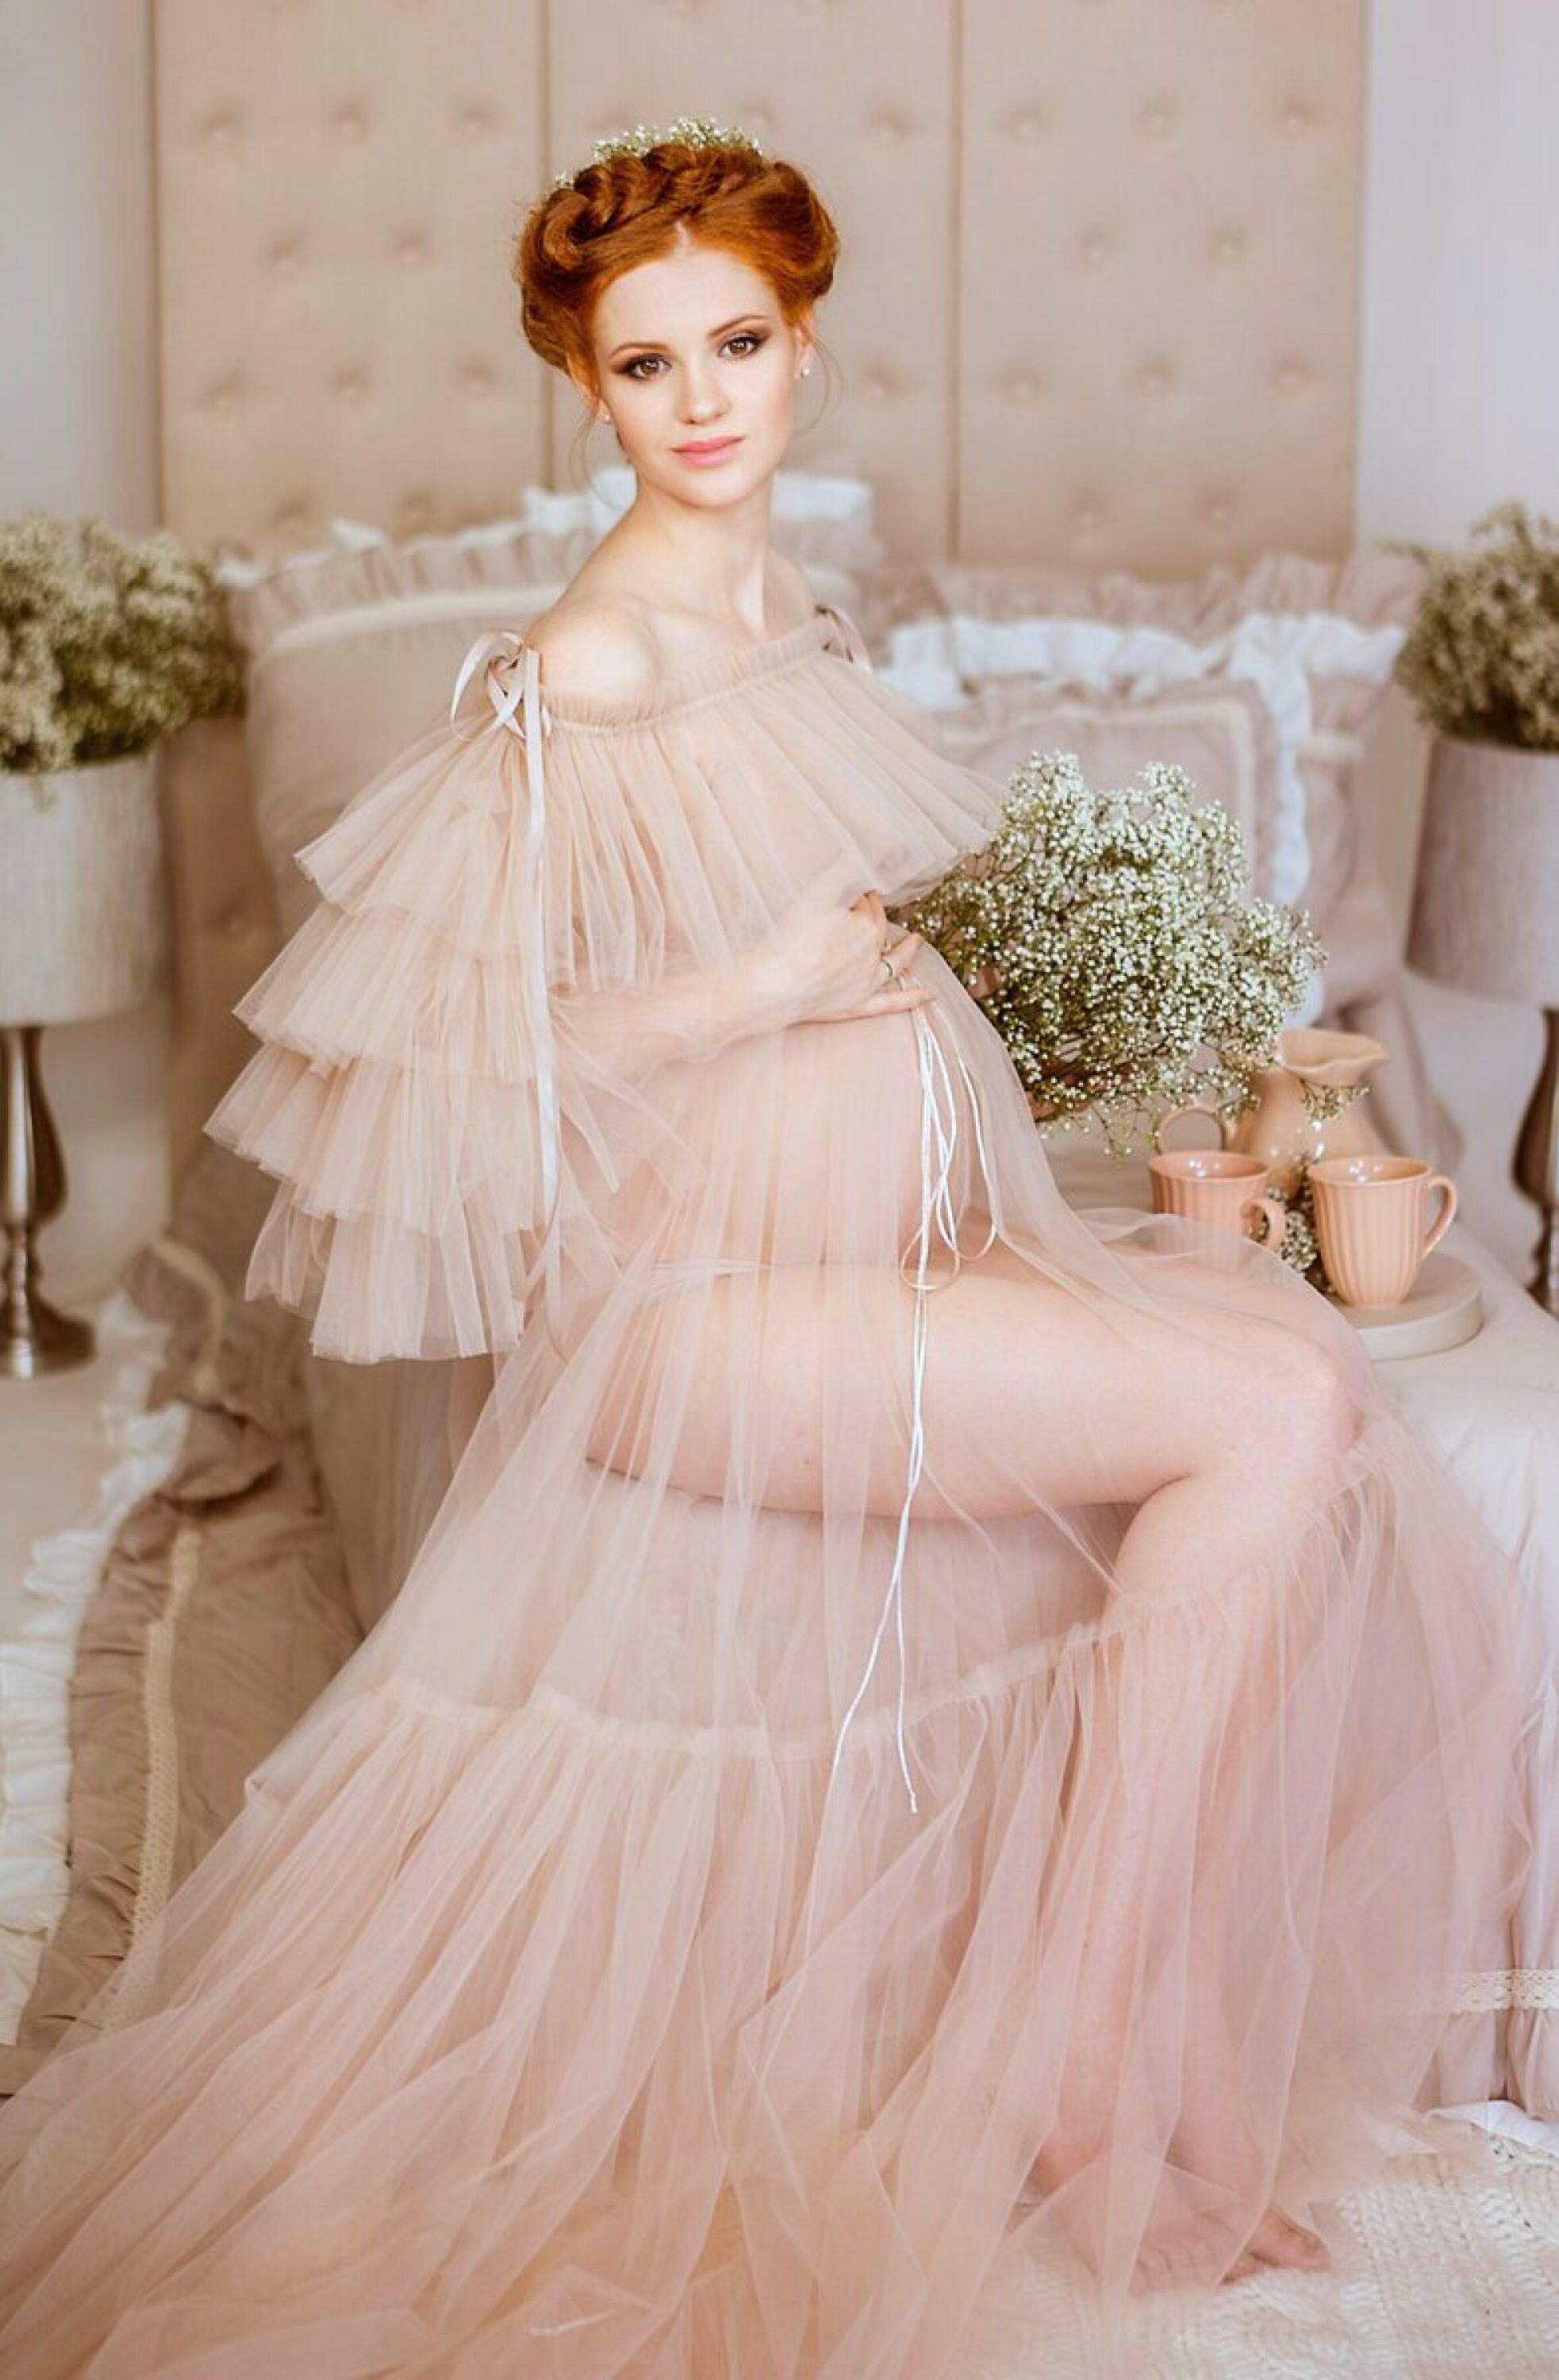 b376828b3b03b LEILA GOWN Drop Sleeves Tulle Maternity Gown Dress for Photoshoot Belly  dress Tule Photography Tüllkleid Fotoshooting